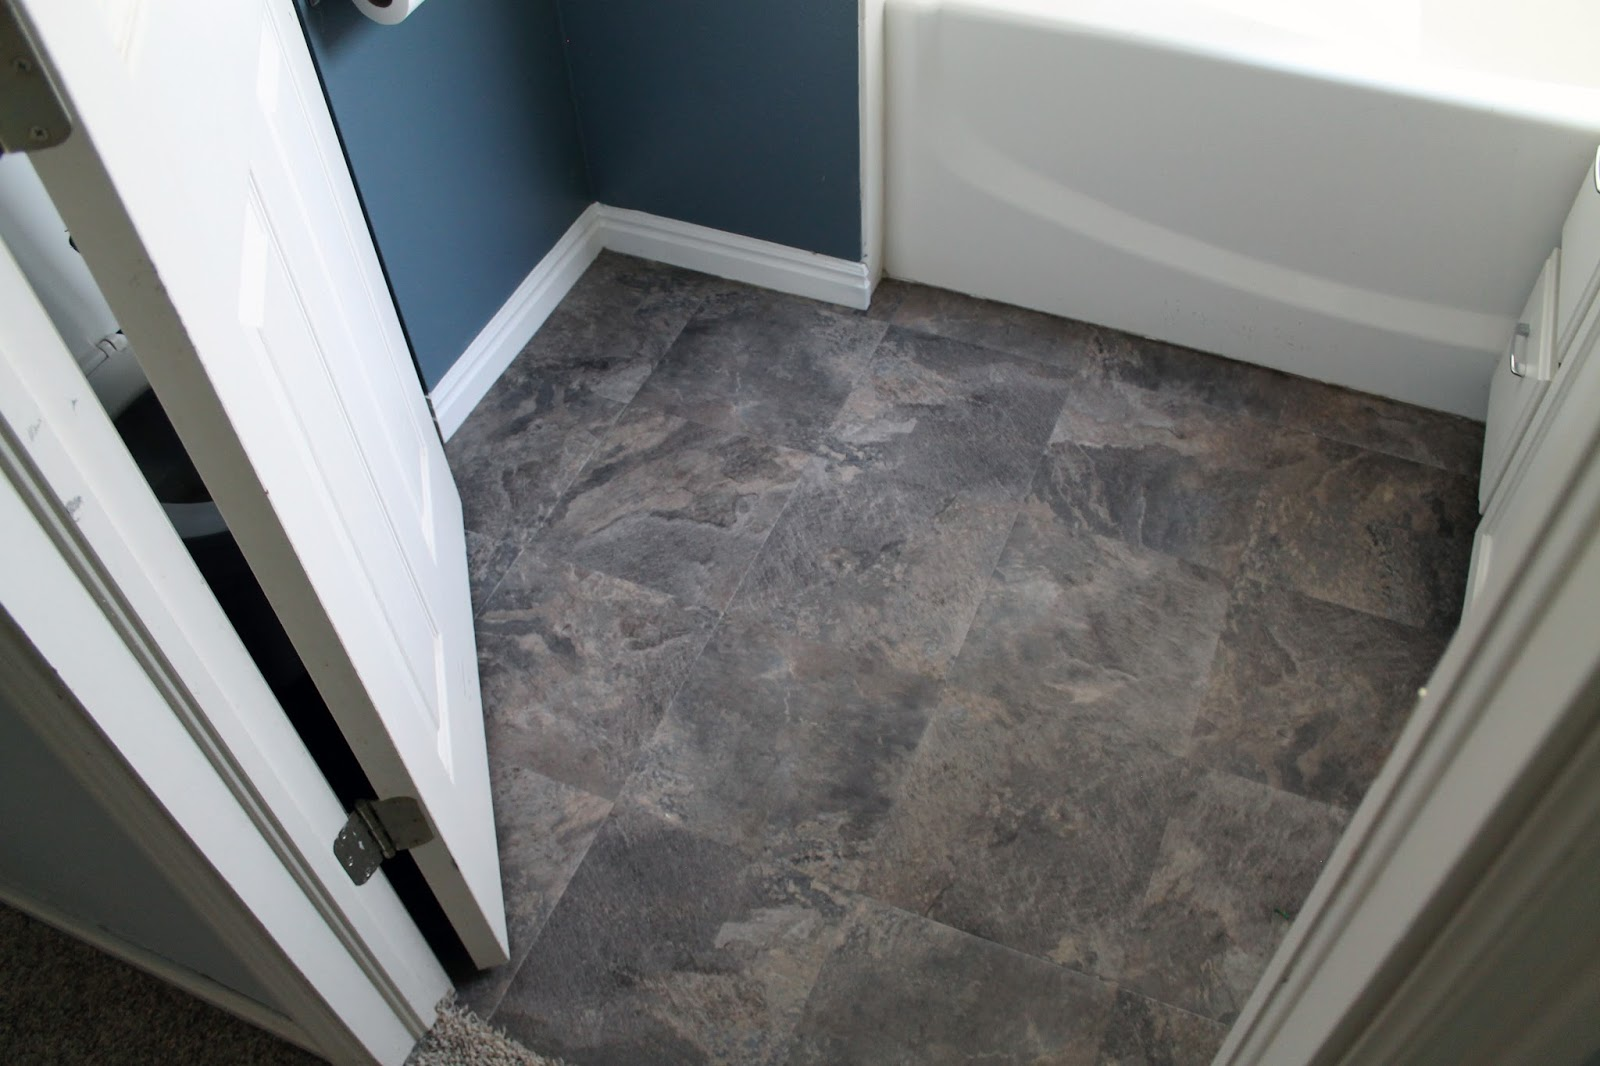 Bathroom floor vinyl tiles - Peel And Stick Bathroom Floors